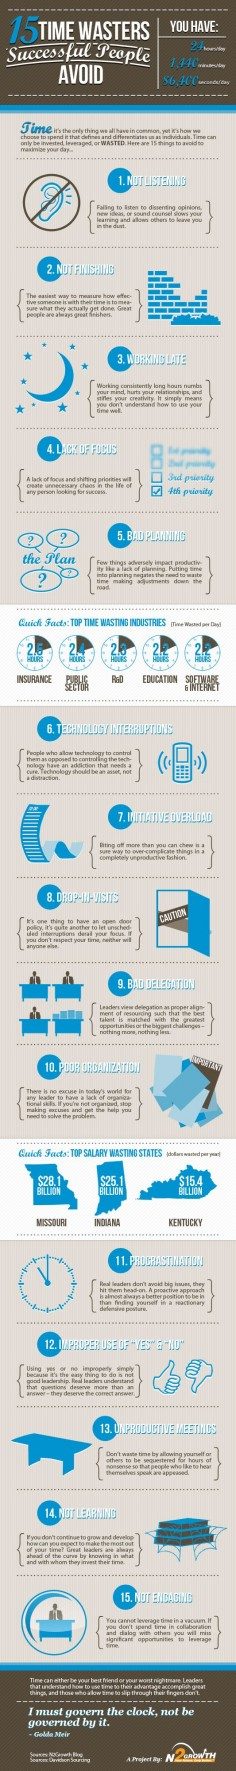 15 Time Wasters Successful People Avoid #infographic